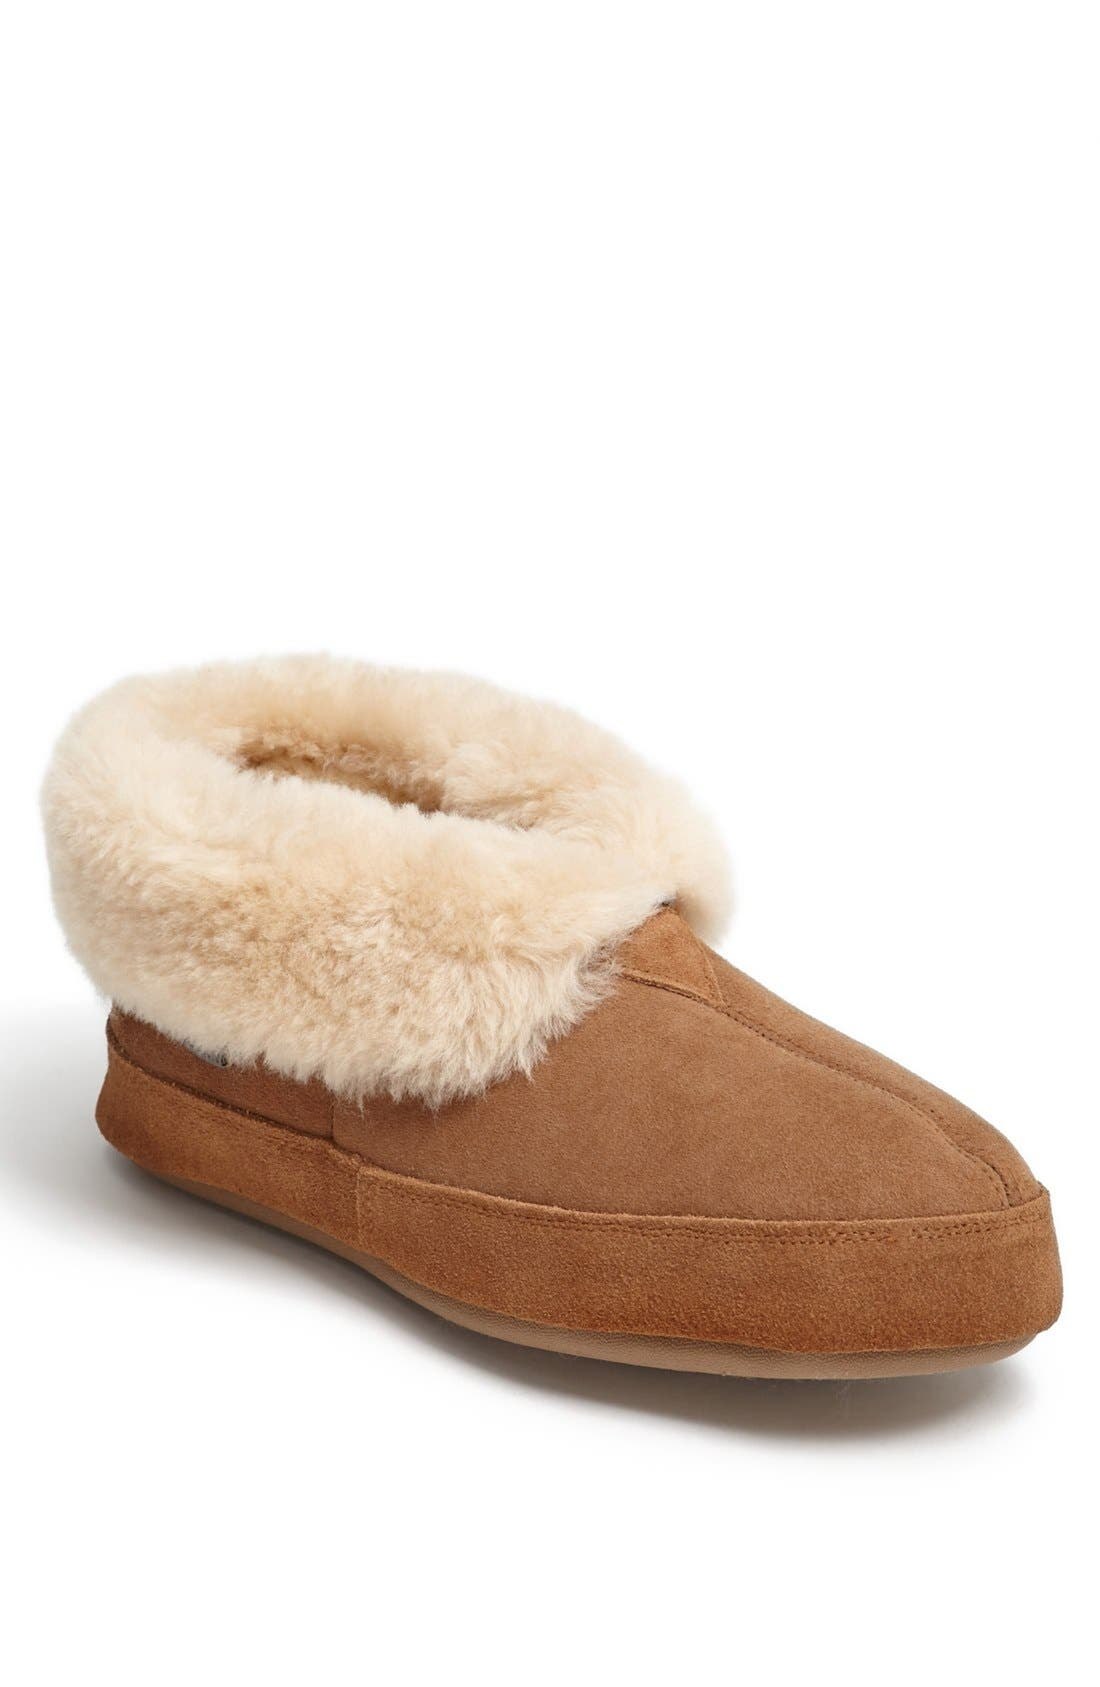 Alternate Image 1 Selected - Acorn Genuine Sheepskin Slipper (Men)